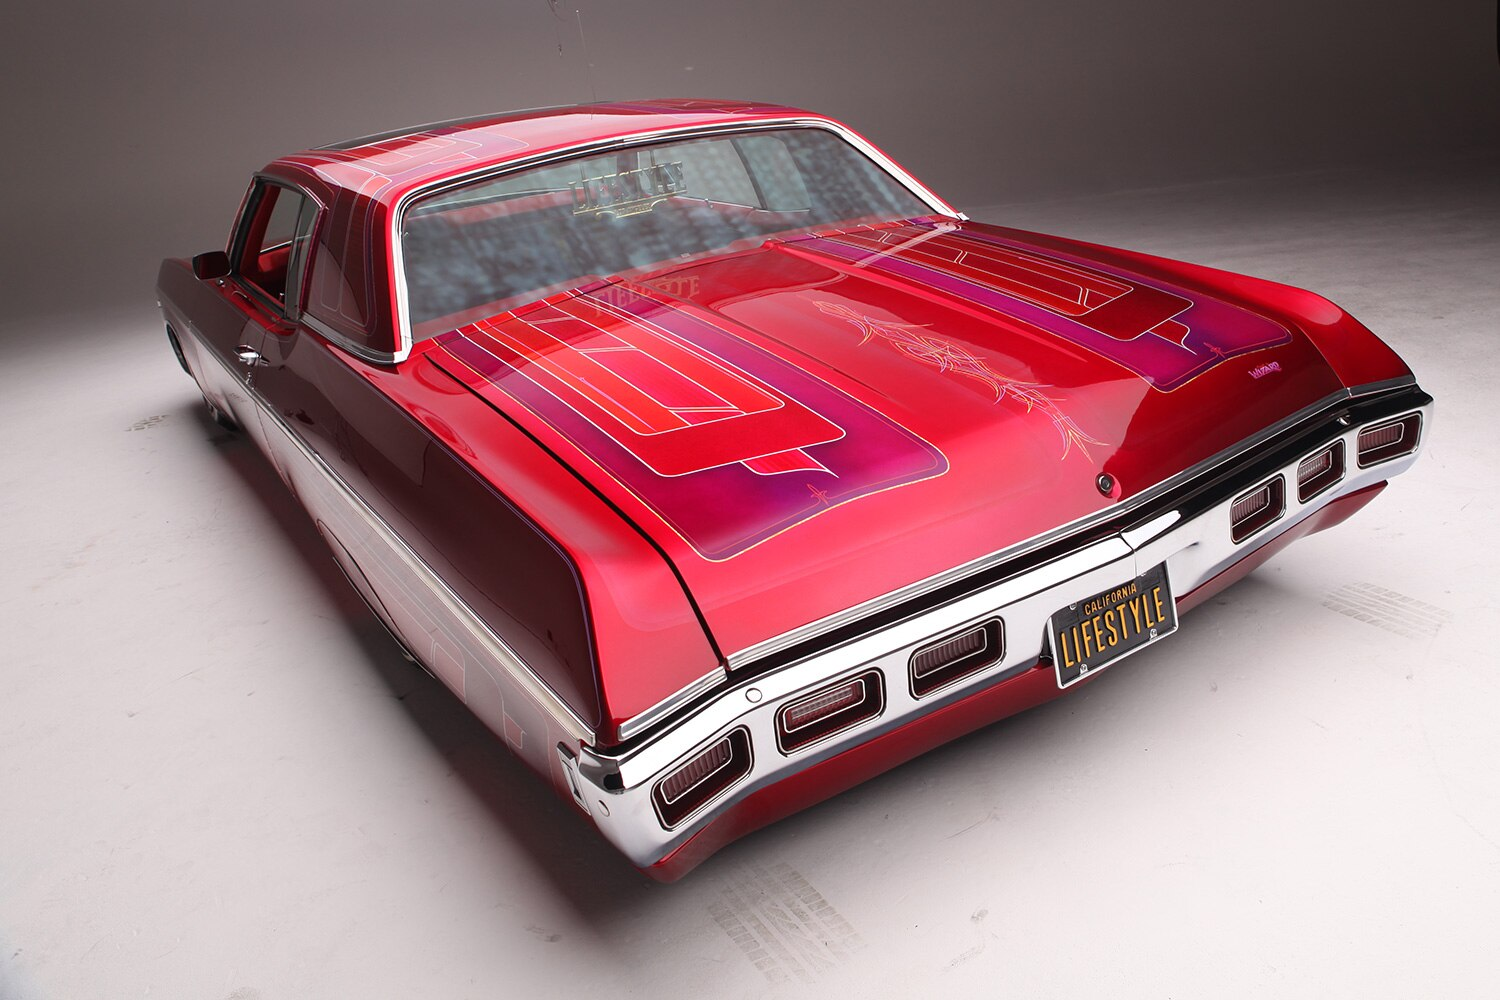 1969 Chevrolet Caprice and 1968 Impala - Products Of The ...